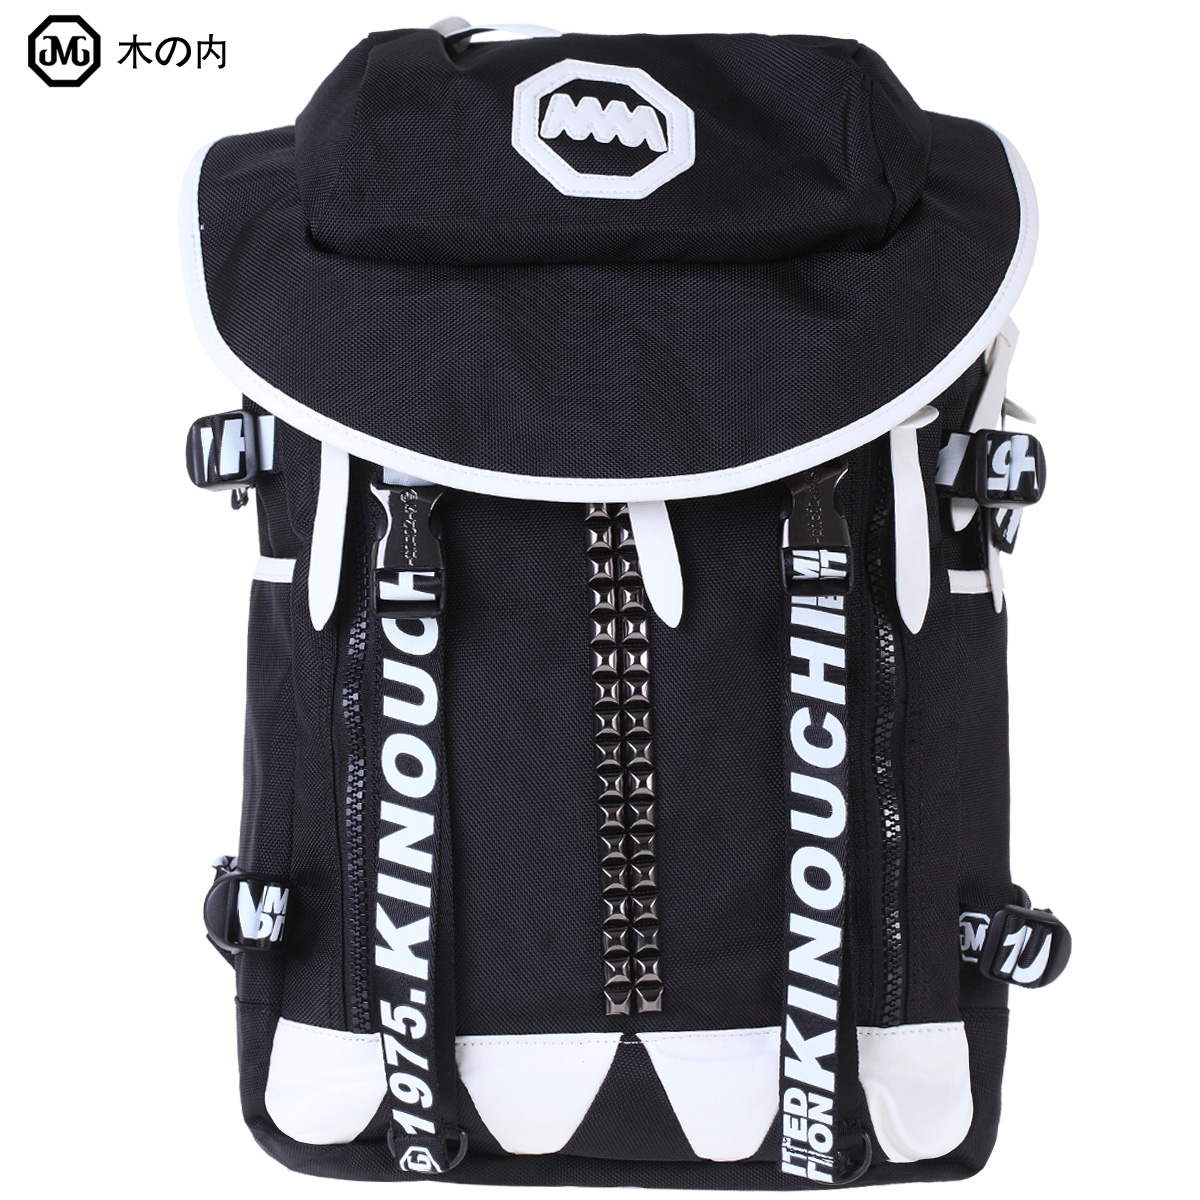 Cool Backpacks For High School qUkWCiLs